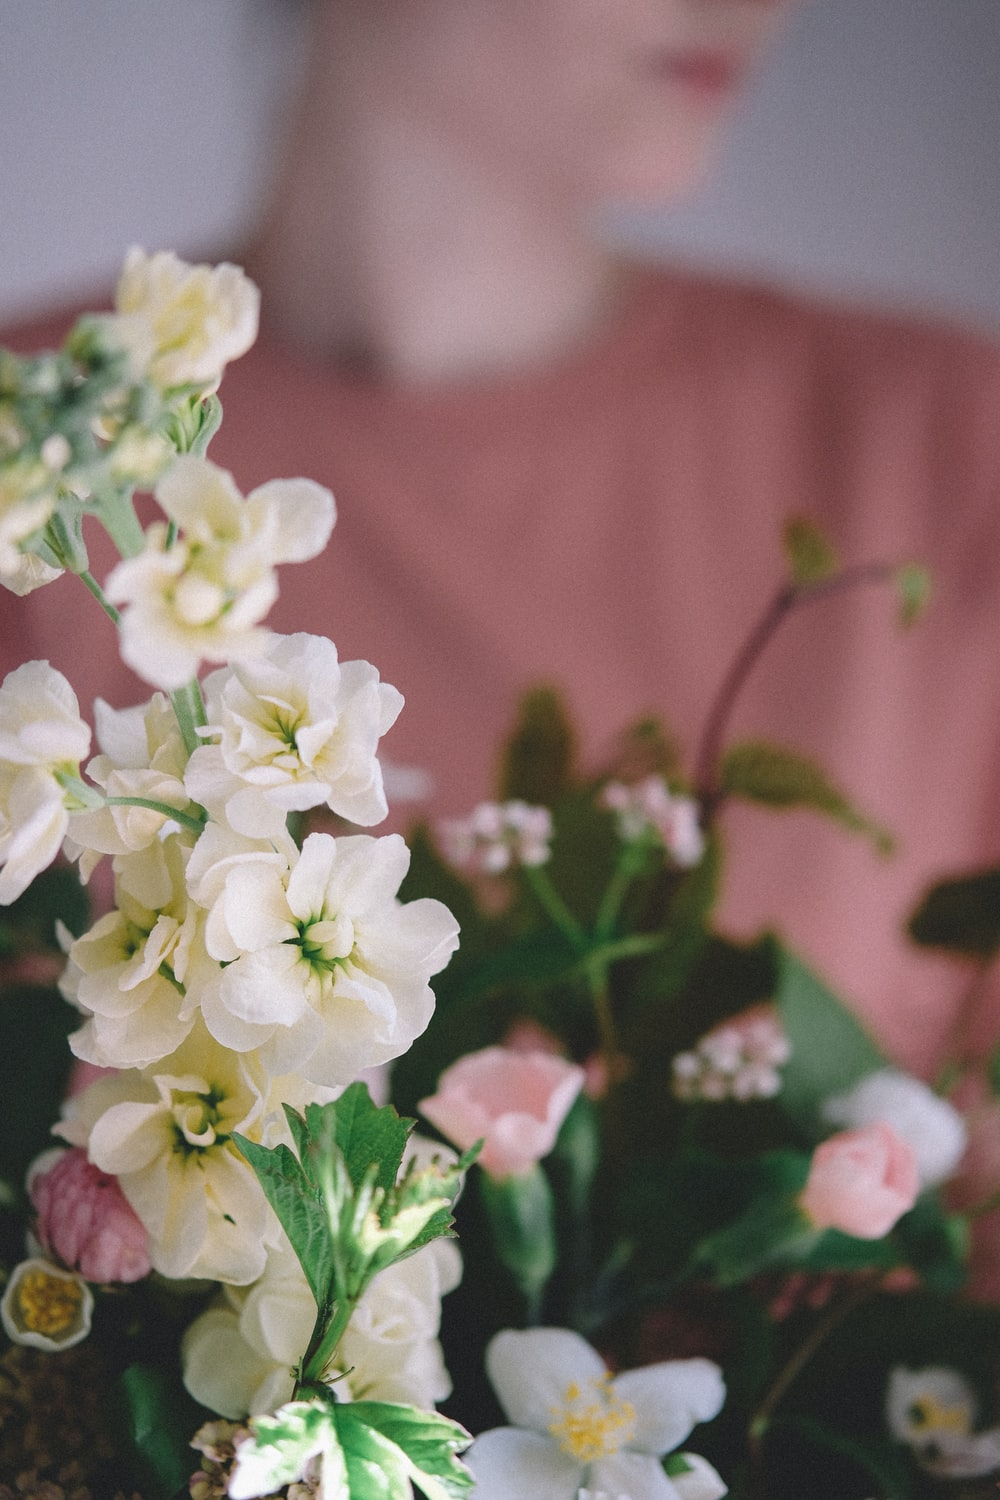 shallow focus photography of white flowers